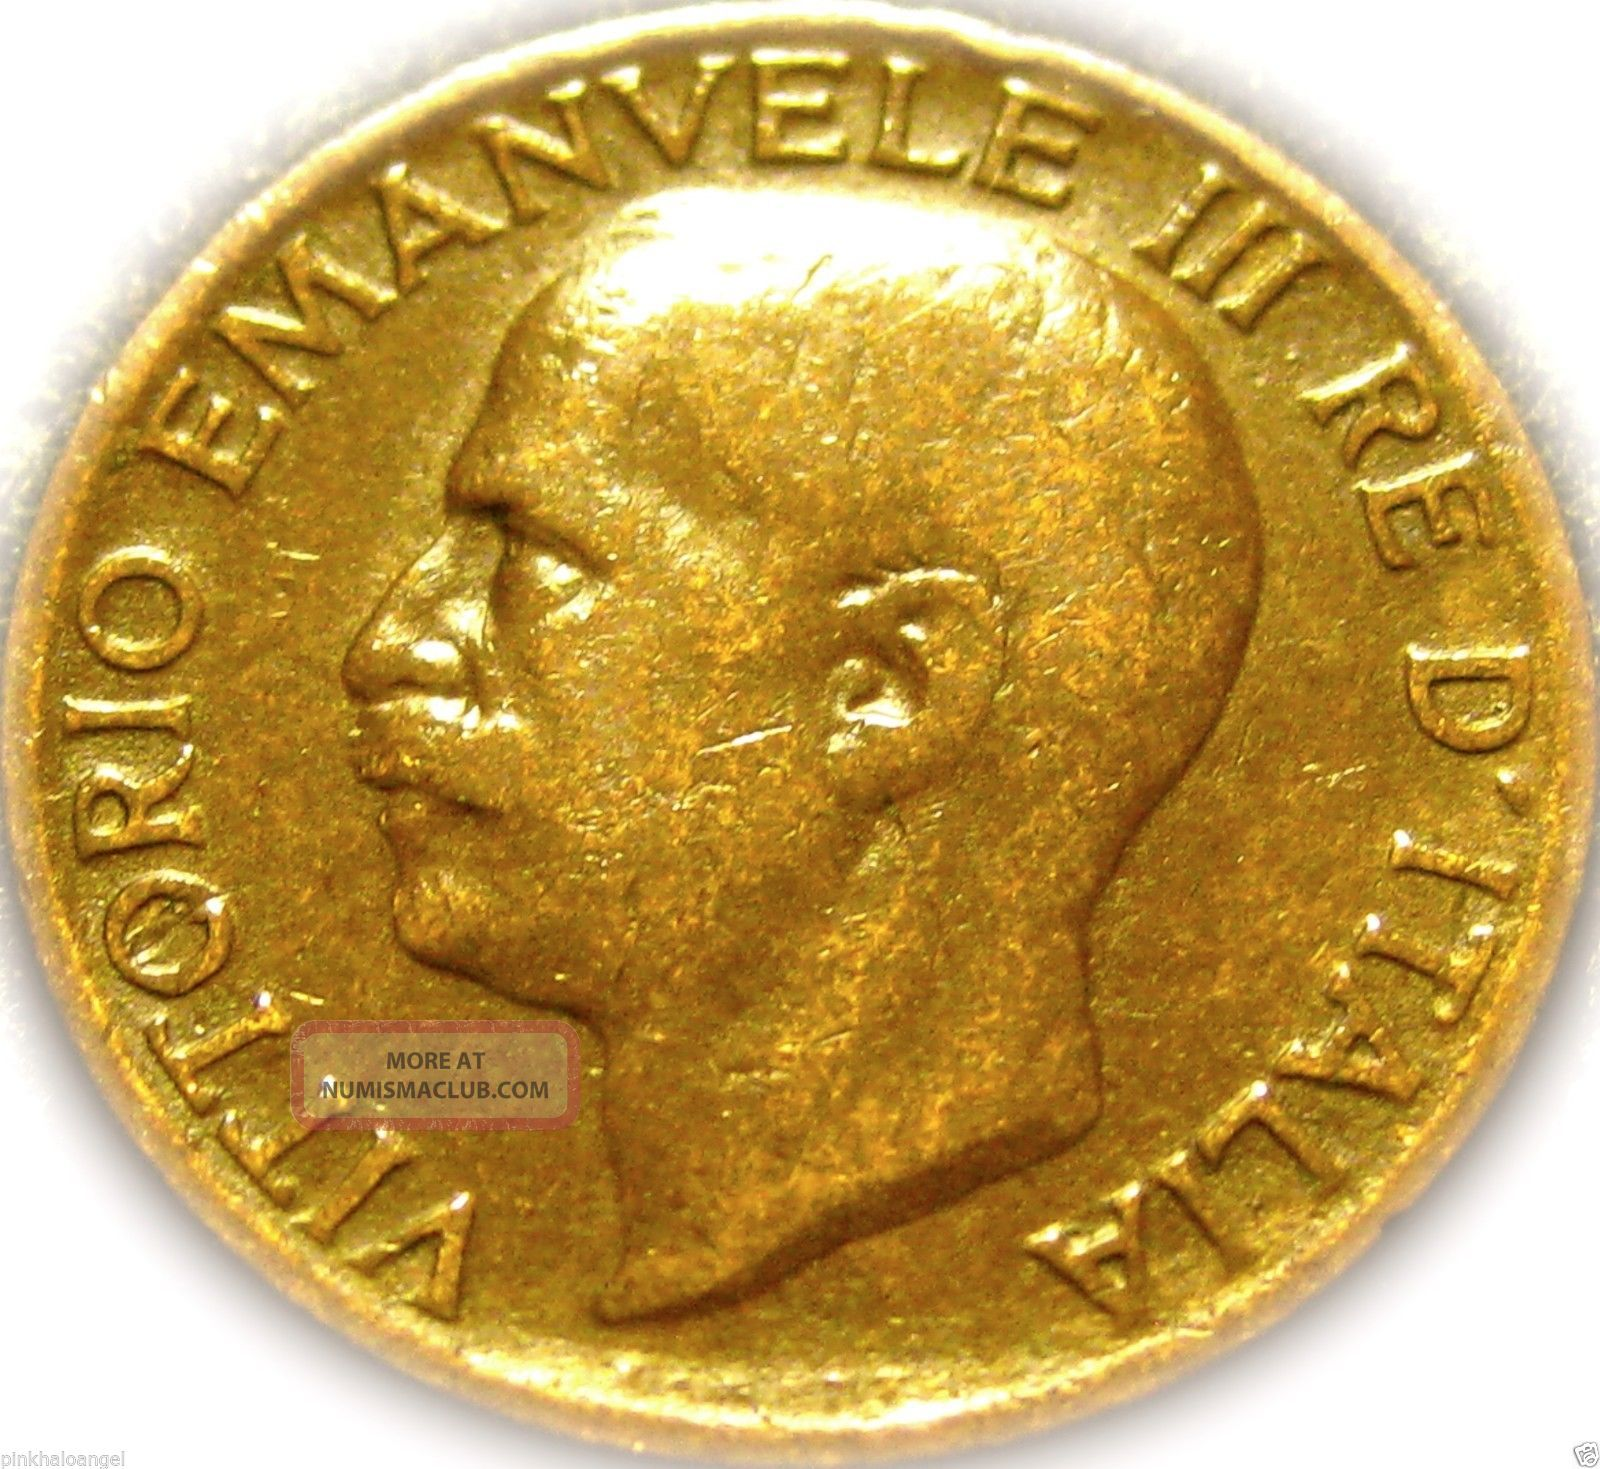 Kingdom Of Italy - Italian 1920r 5 Centesimi Coin - Great Wheat Coin